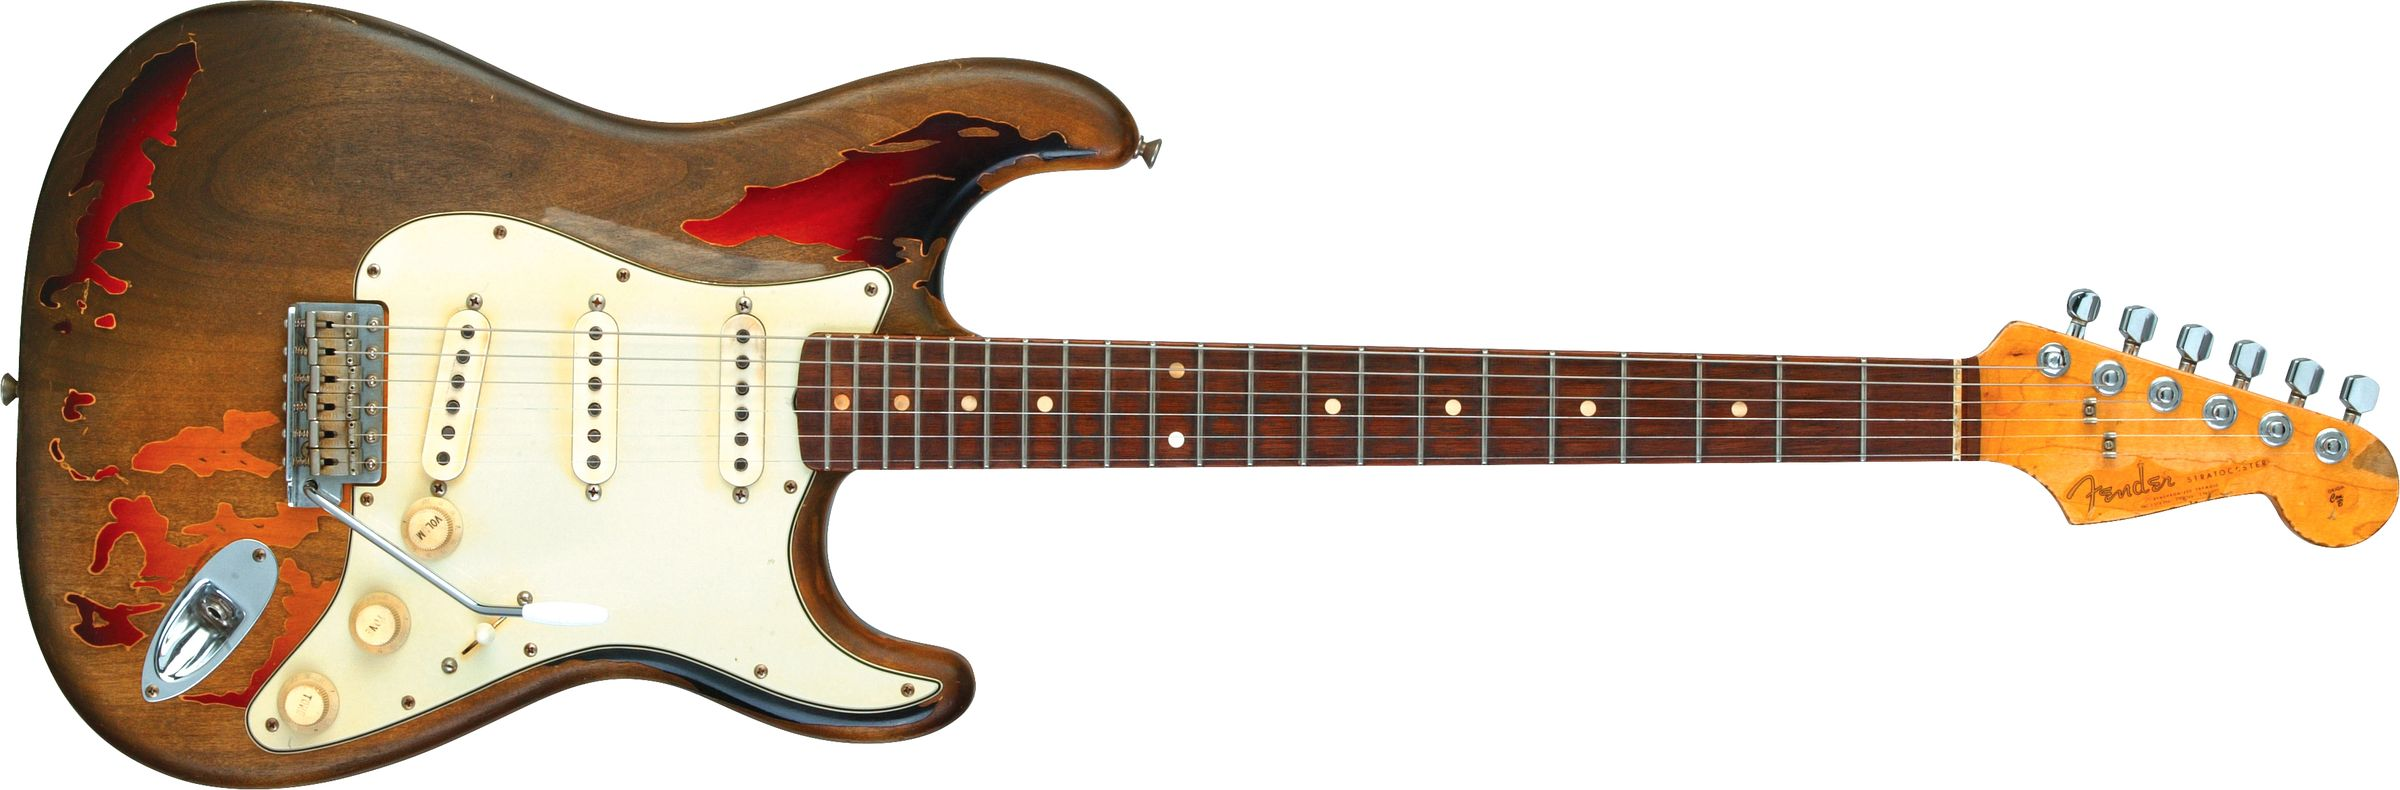 GUITARRA FENDER SIG SERIES RORY GALLAGHER STRATOCASTER 015-0080-800 3-COLOR SUNBURST